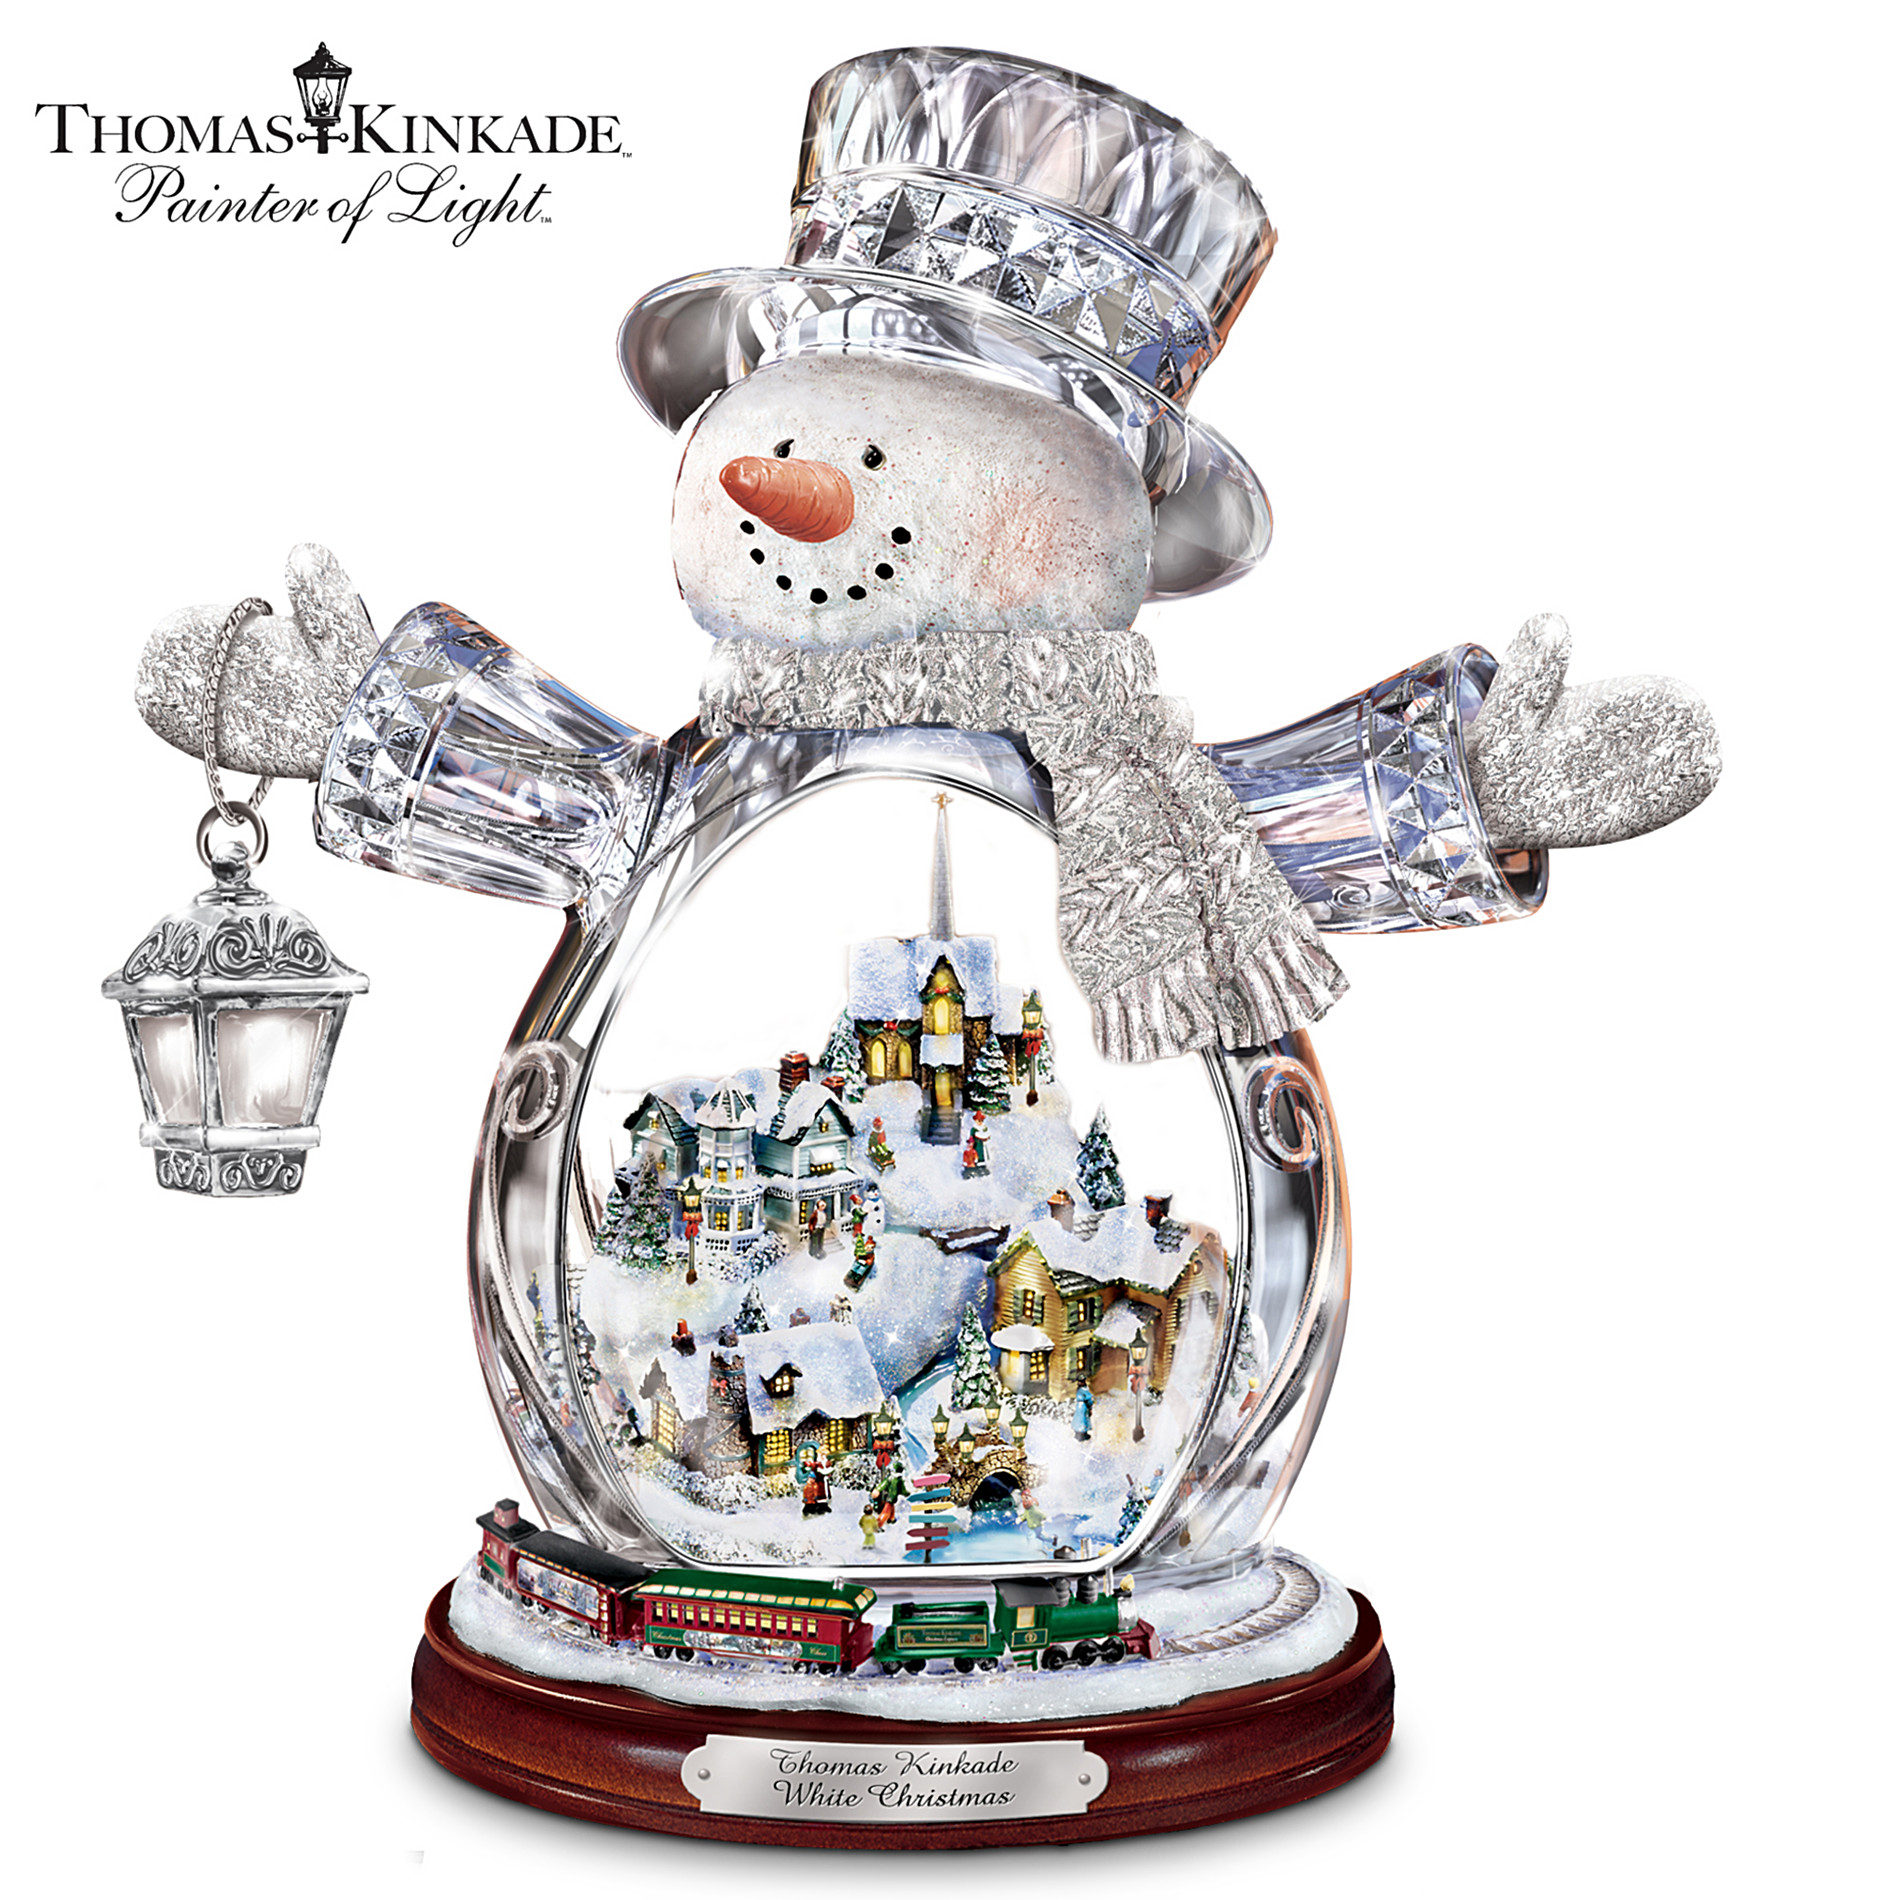 The Bradford Editions Thomas Kinkade Crystal Snowman Figurine Featuring Light-Up Village And Animated Train at Sears.com